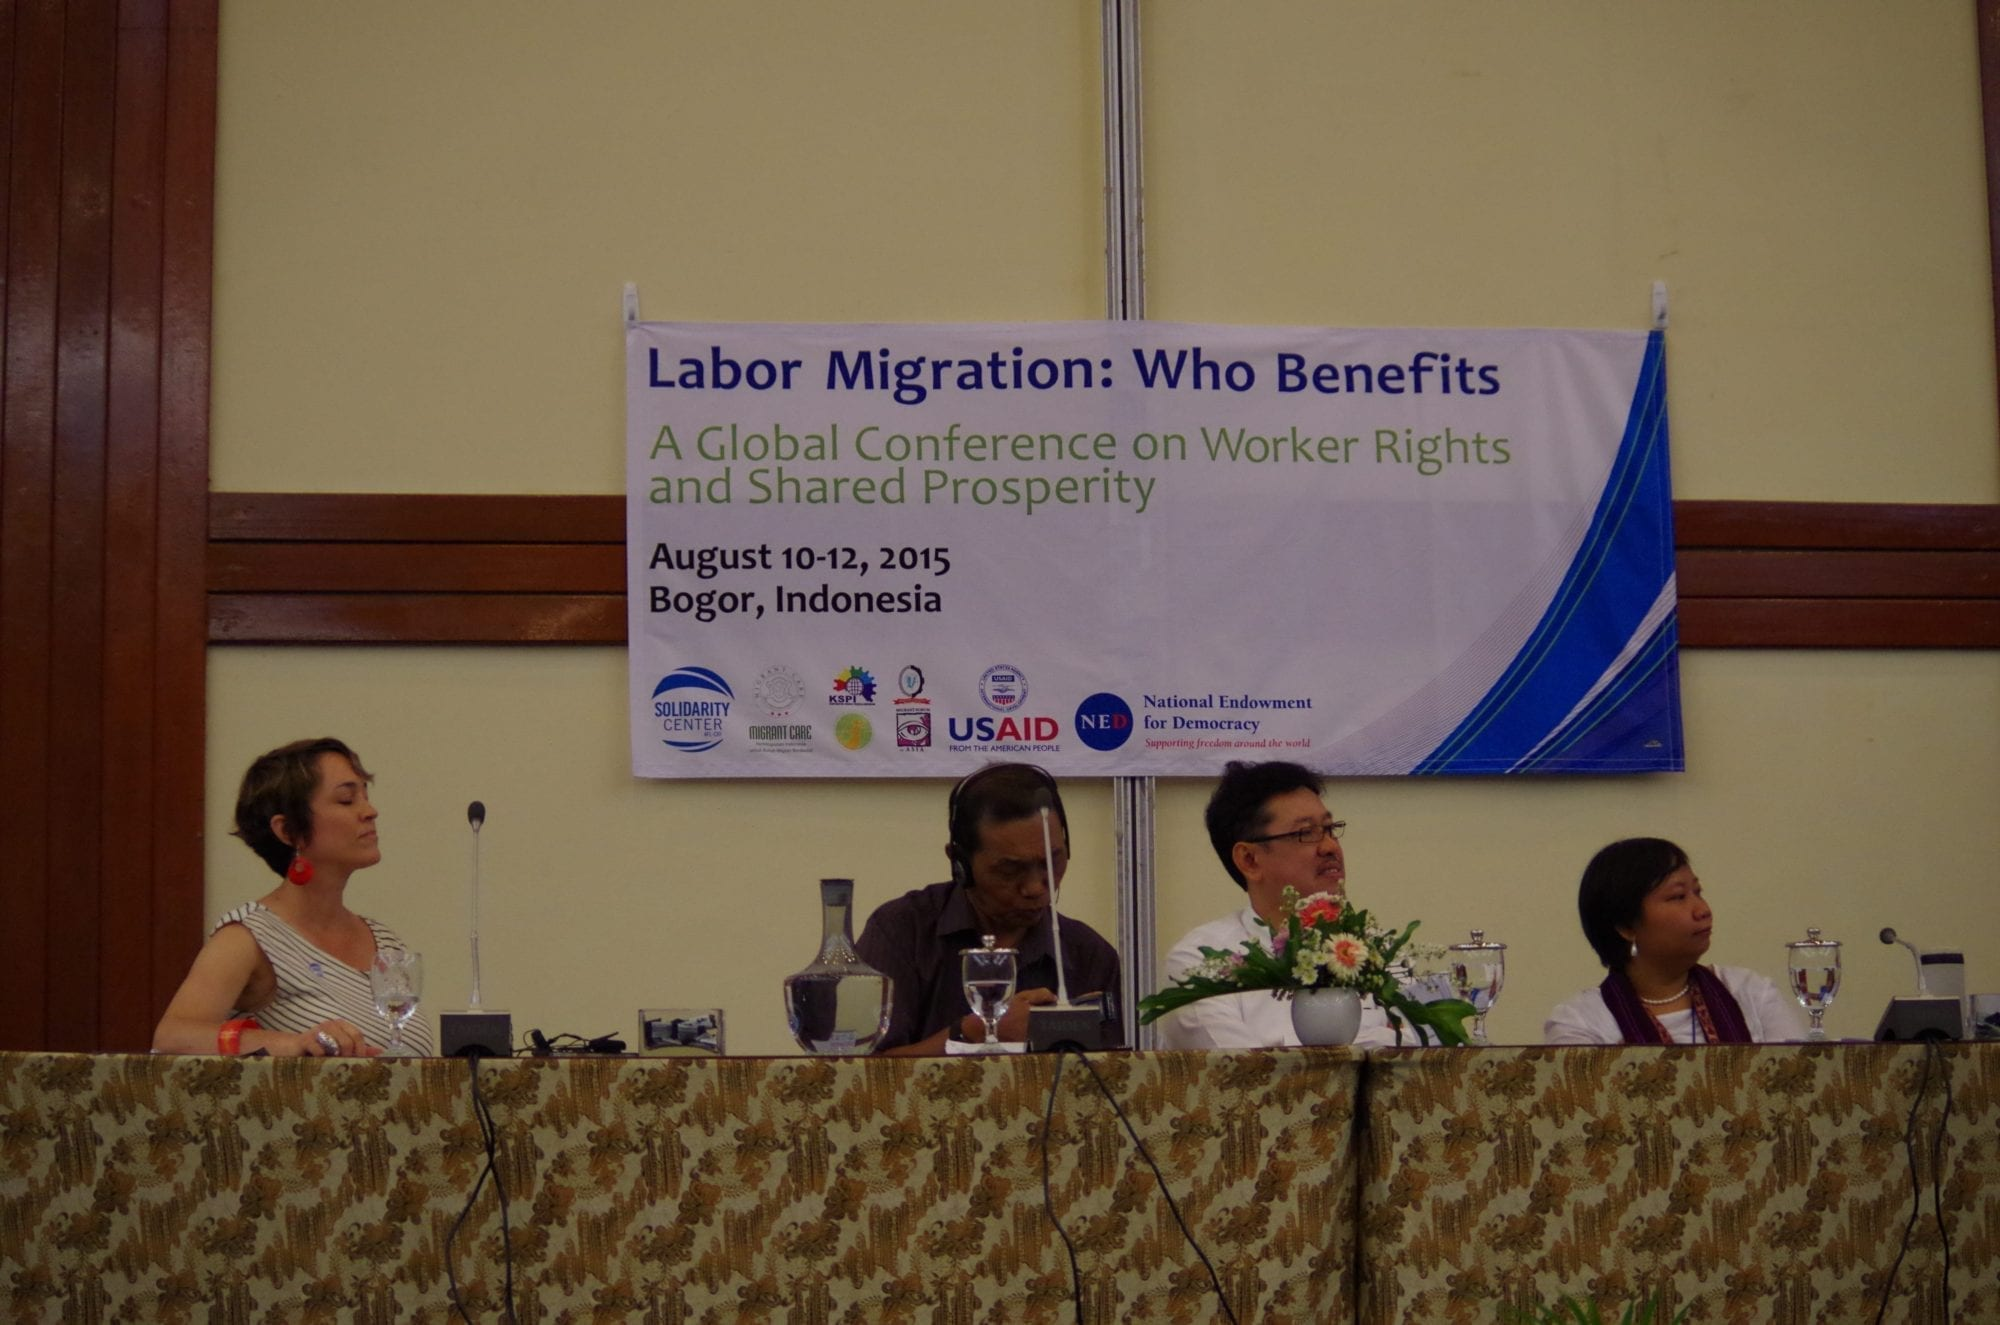 Civil Rights & Shared Prosperity for Migrant Workers